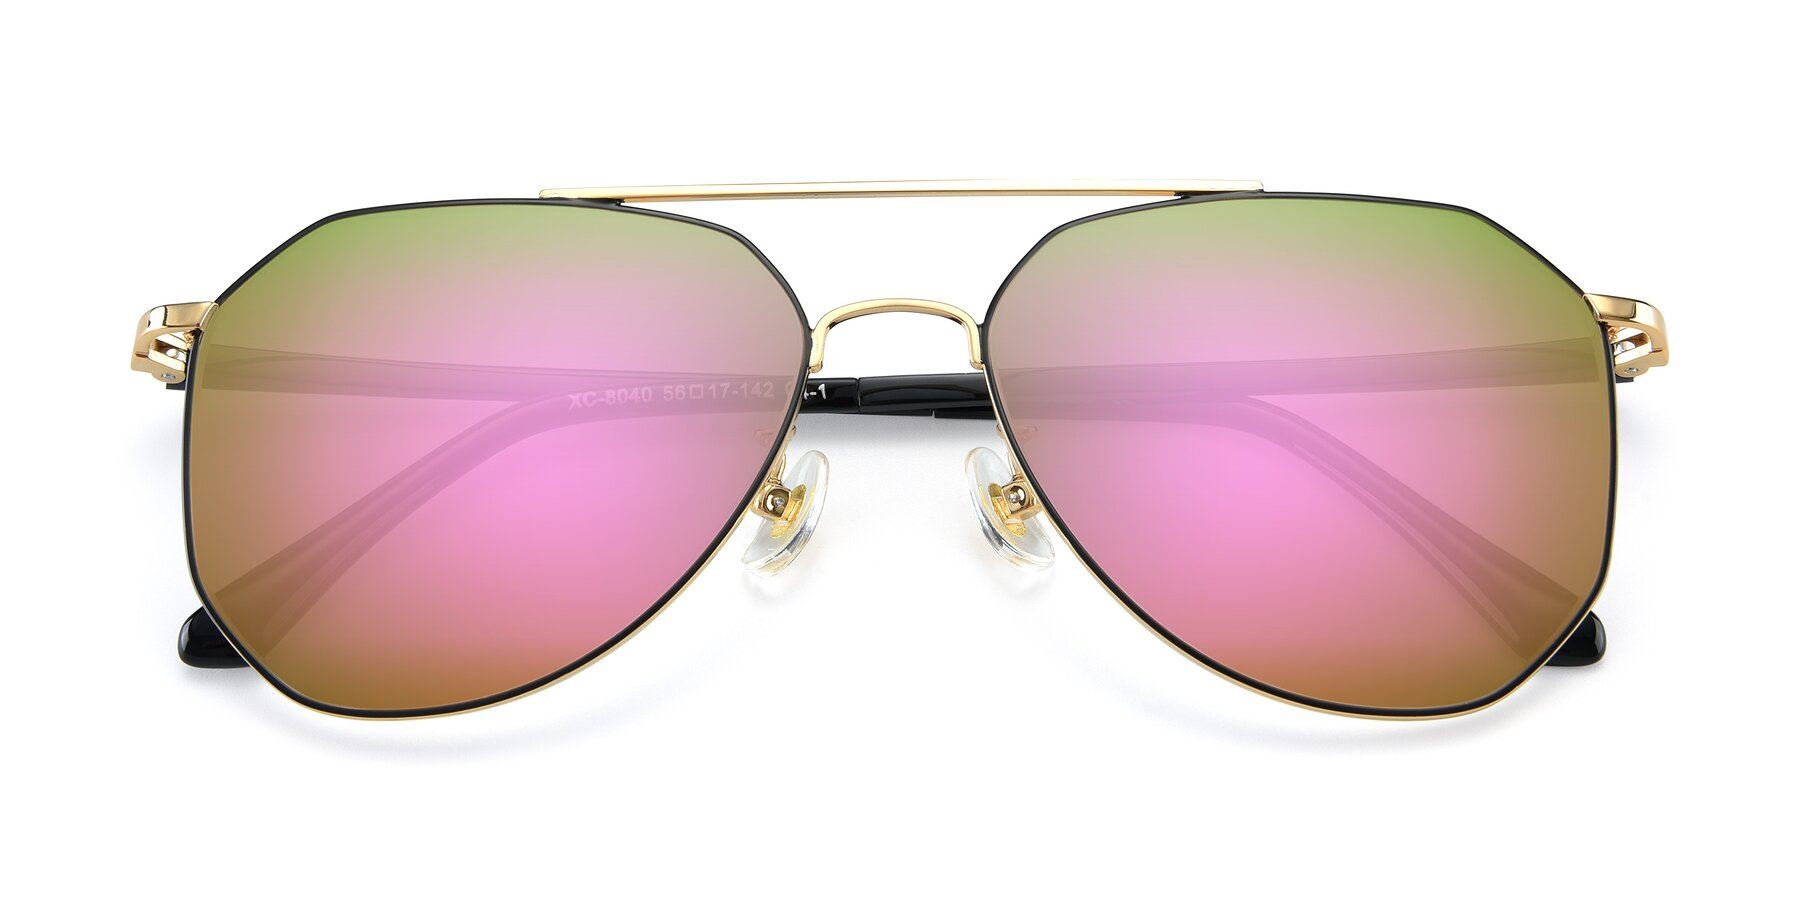 Folded Front of XC-8040 in Black/ Gold with Pink Mirrored Lenses